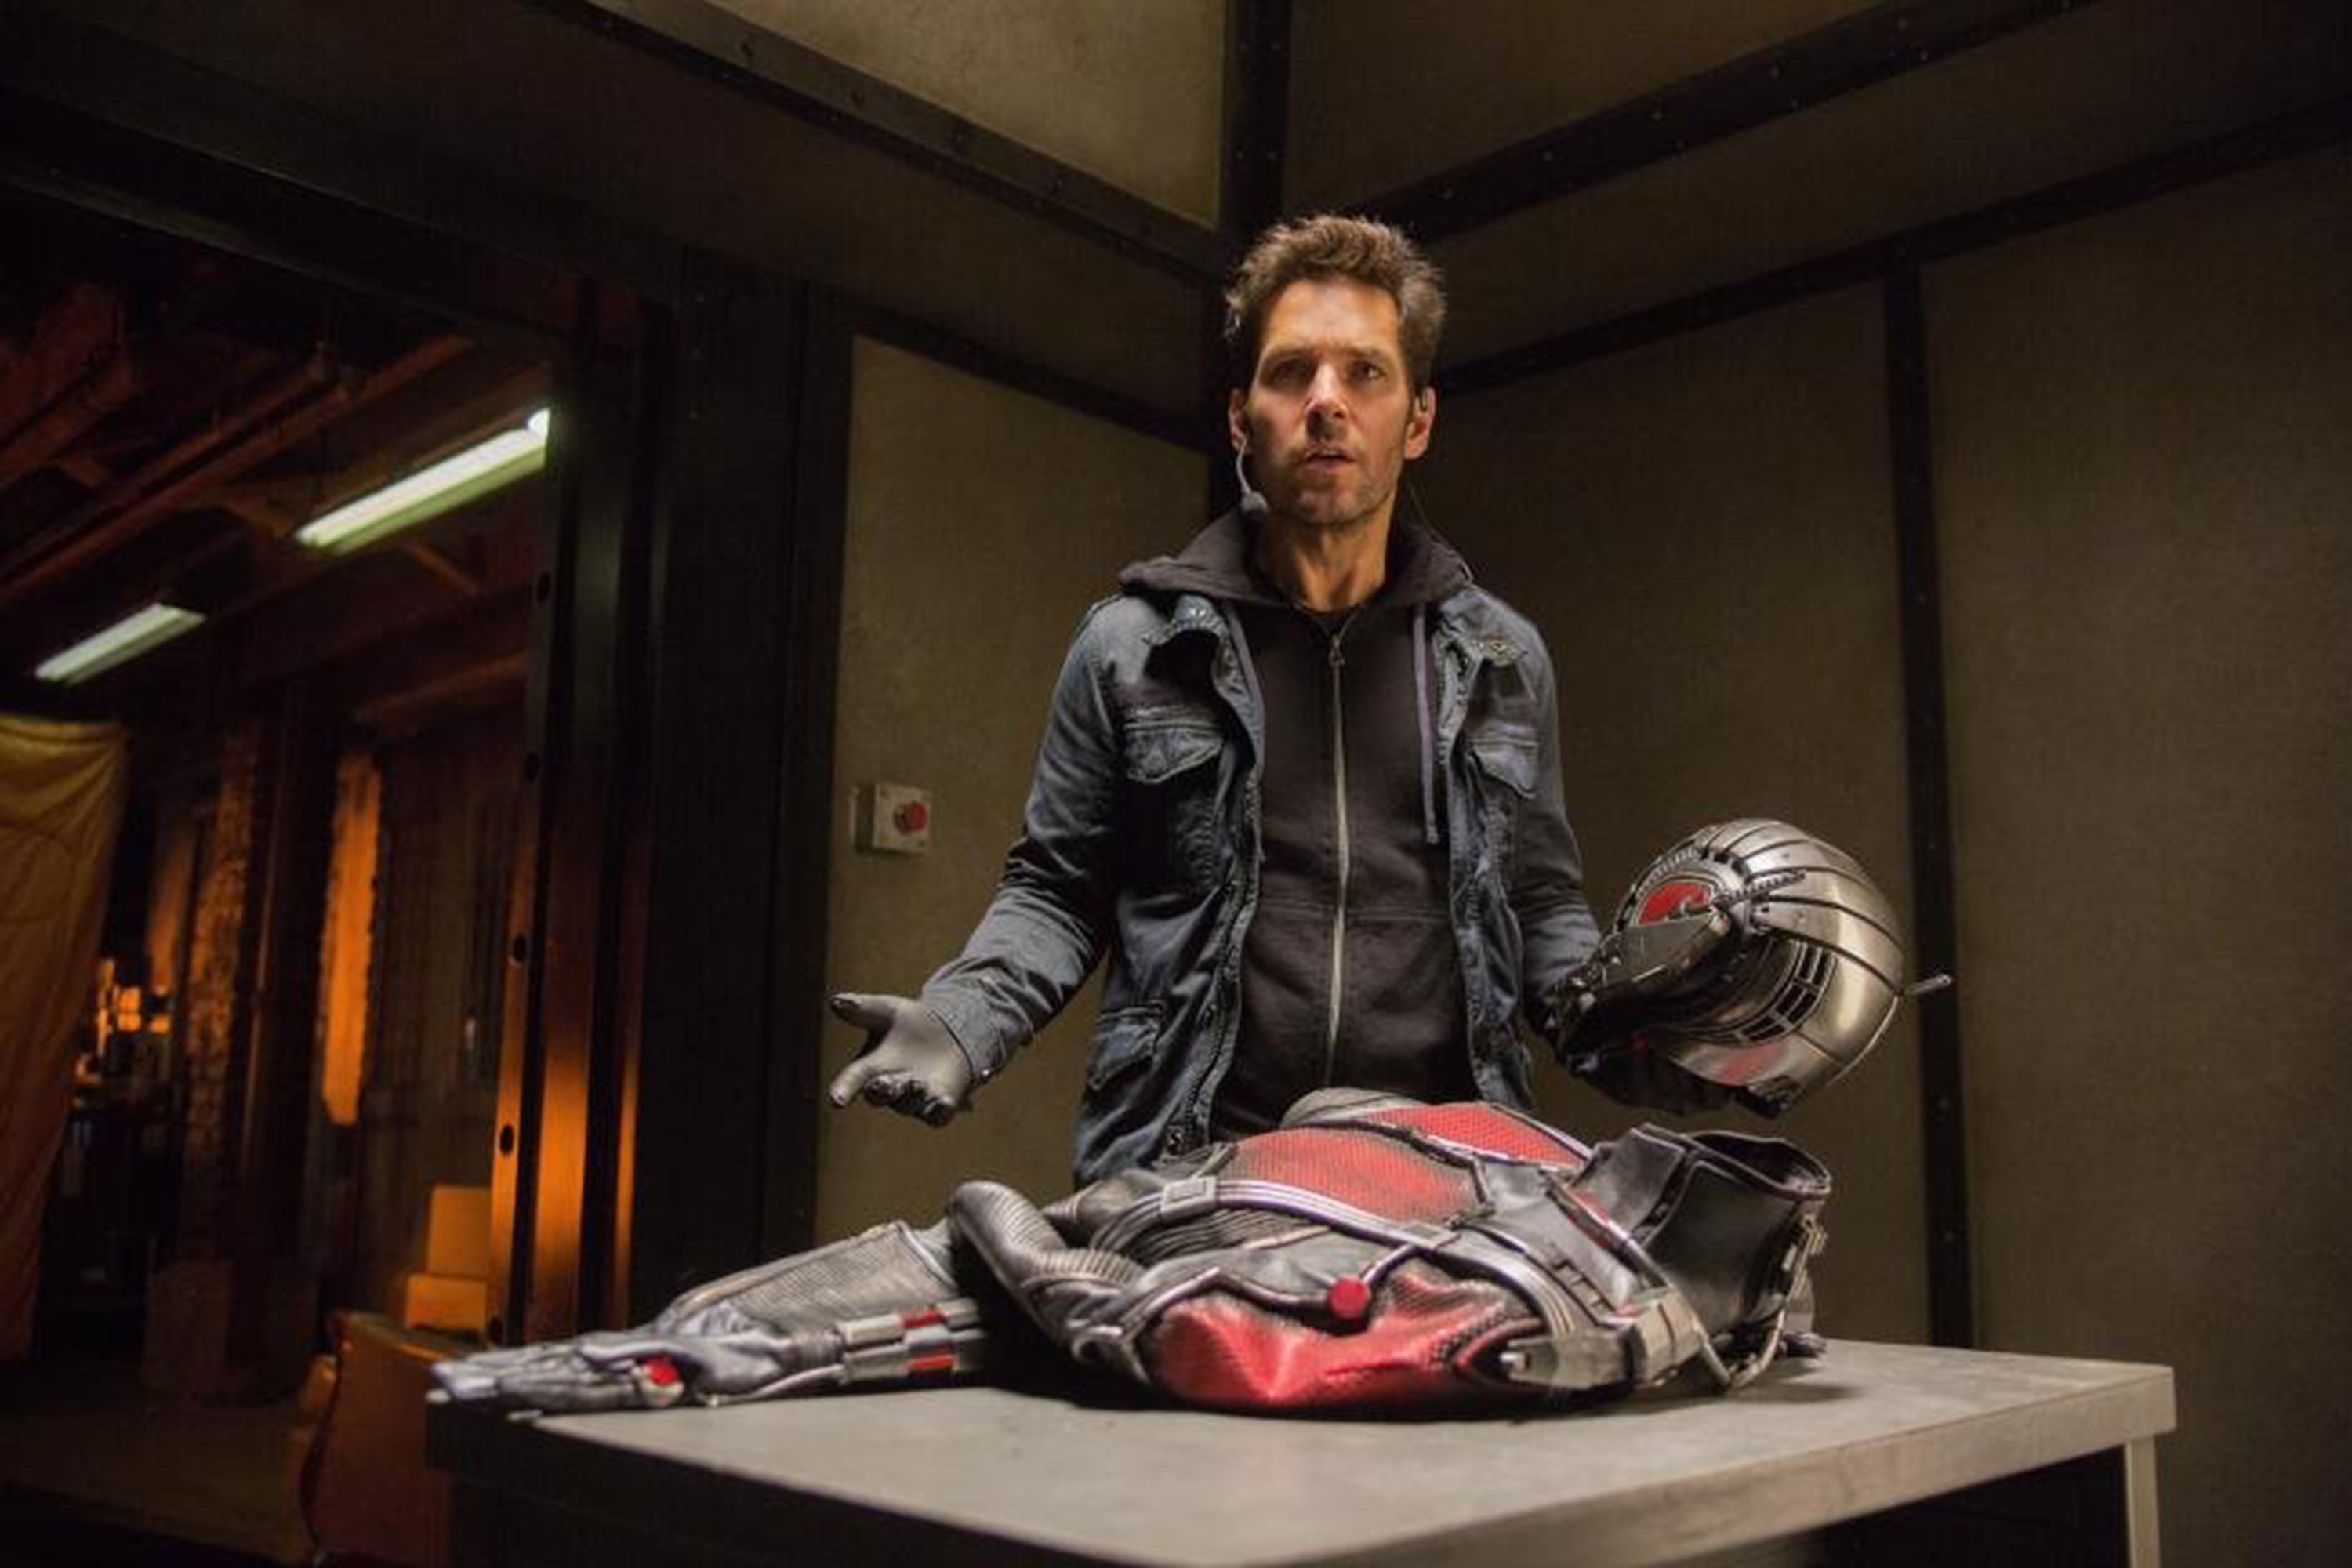 Paul Rudd plays the role of Scott Lang, a.k.a. Ant-Man, who can be shrunk down to microscopic size.